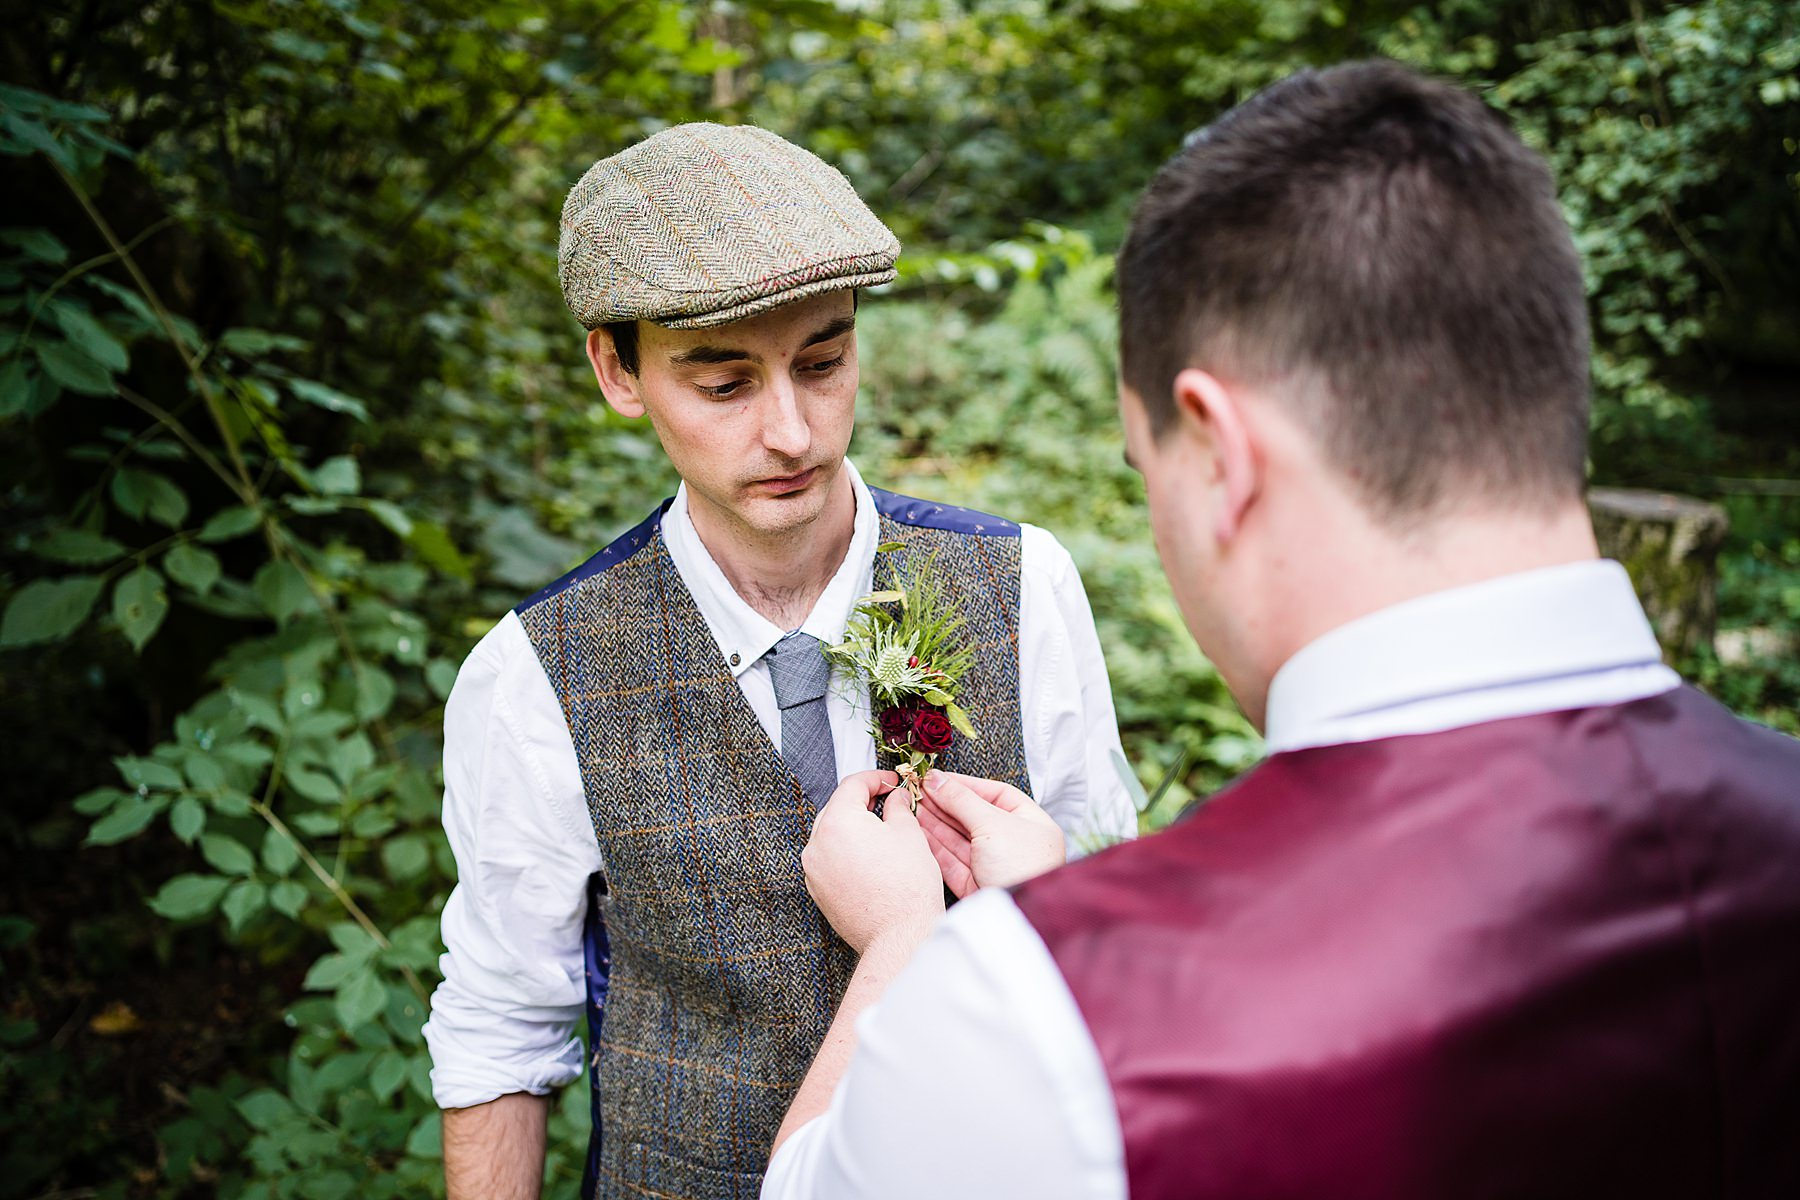 groom getting button hole attached